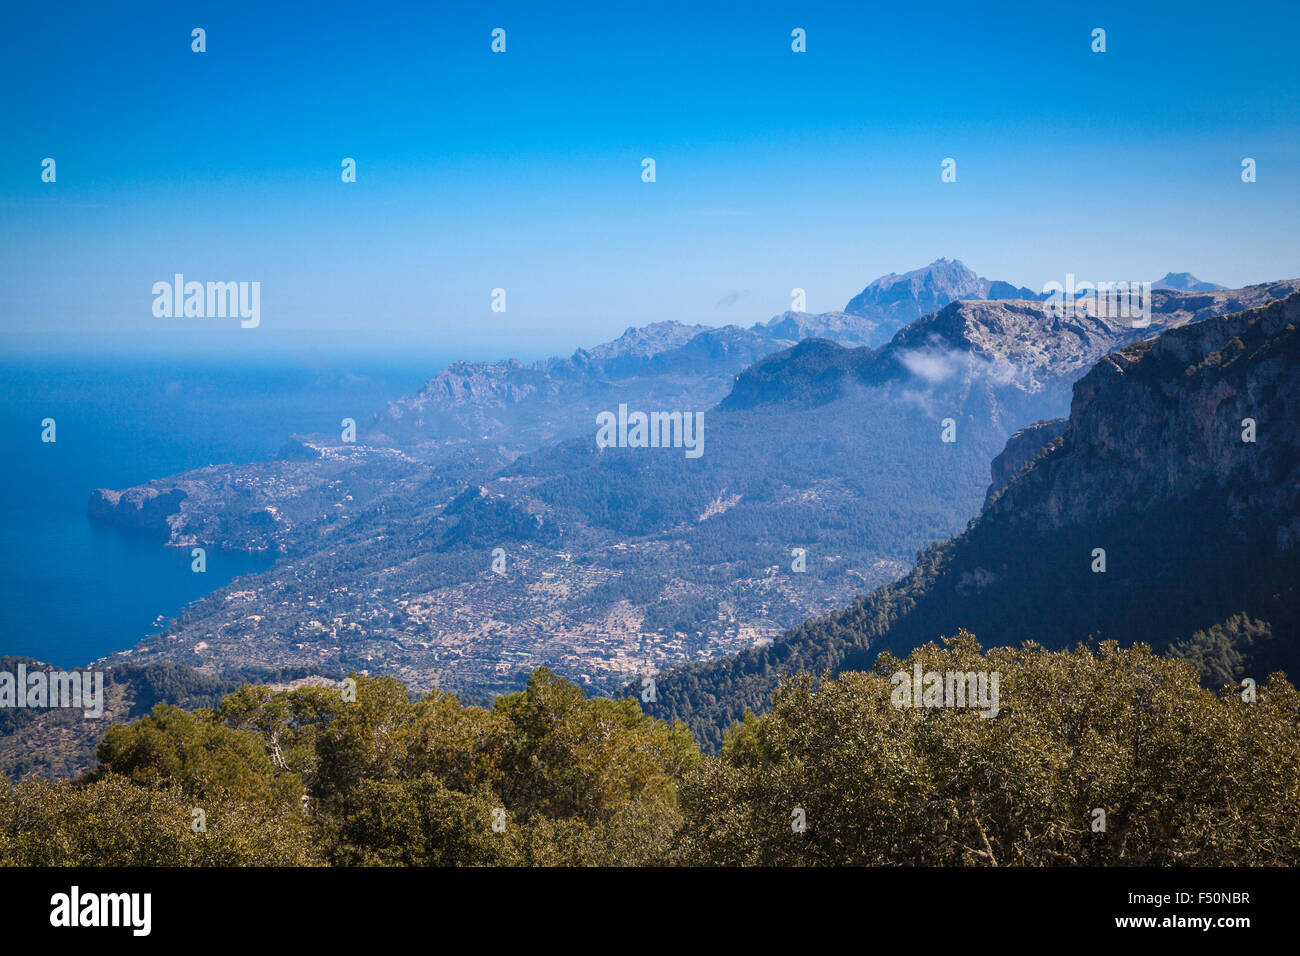 Hiking in the Tramuntana, the mountains of Mallorca - Stock Image